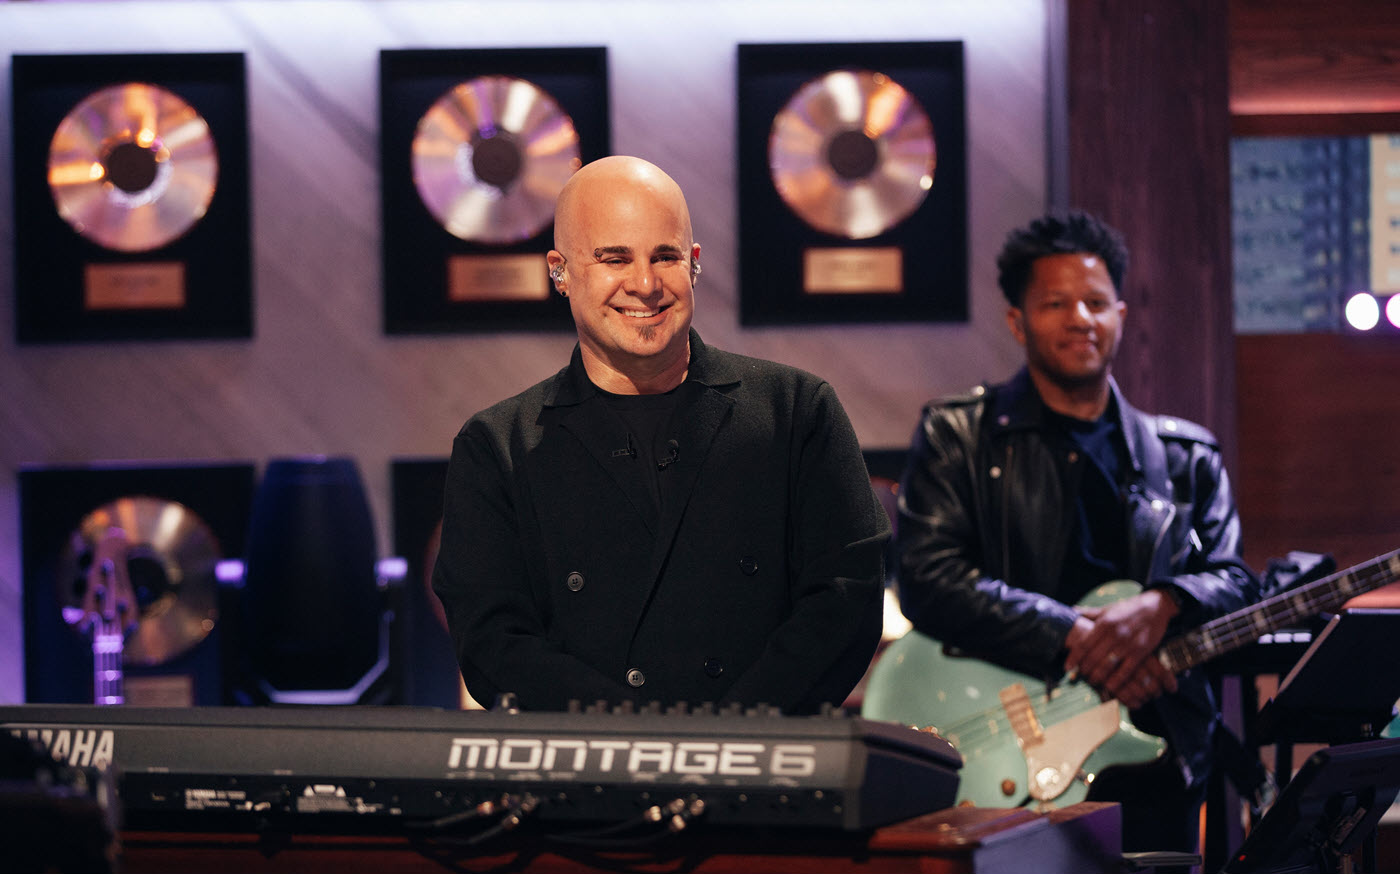 Attractive young bald male musician with a guitarist in the background and a wall of framed gold albums smiles for camera.